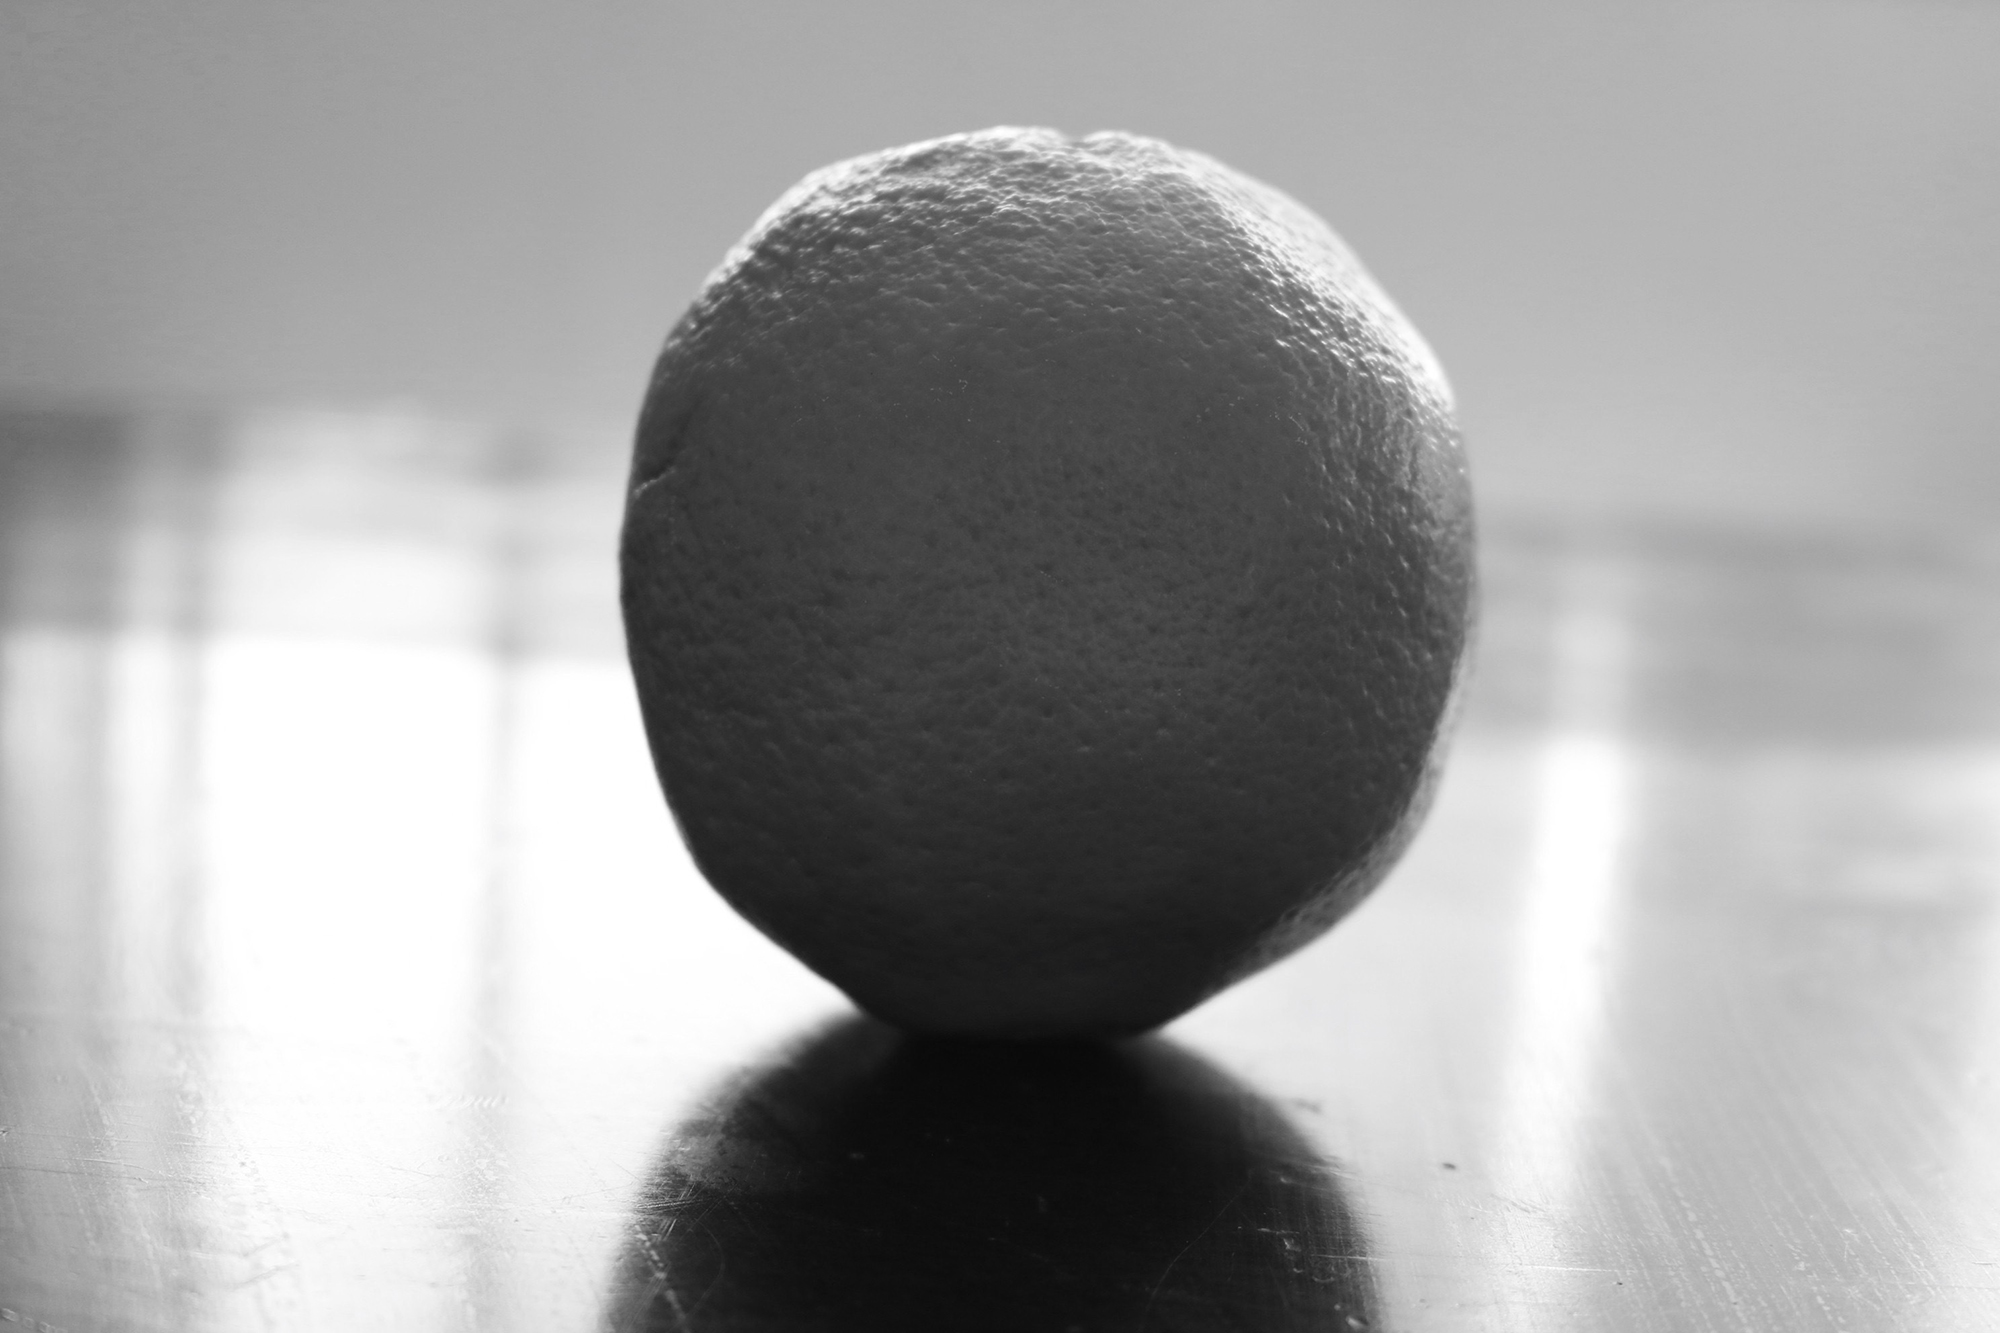 A black and white ball